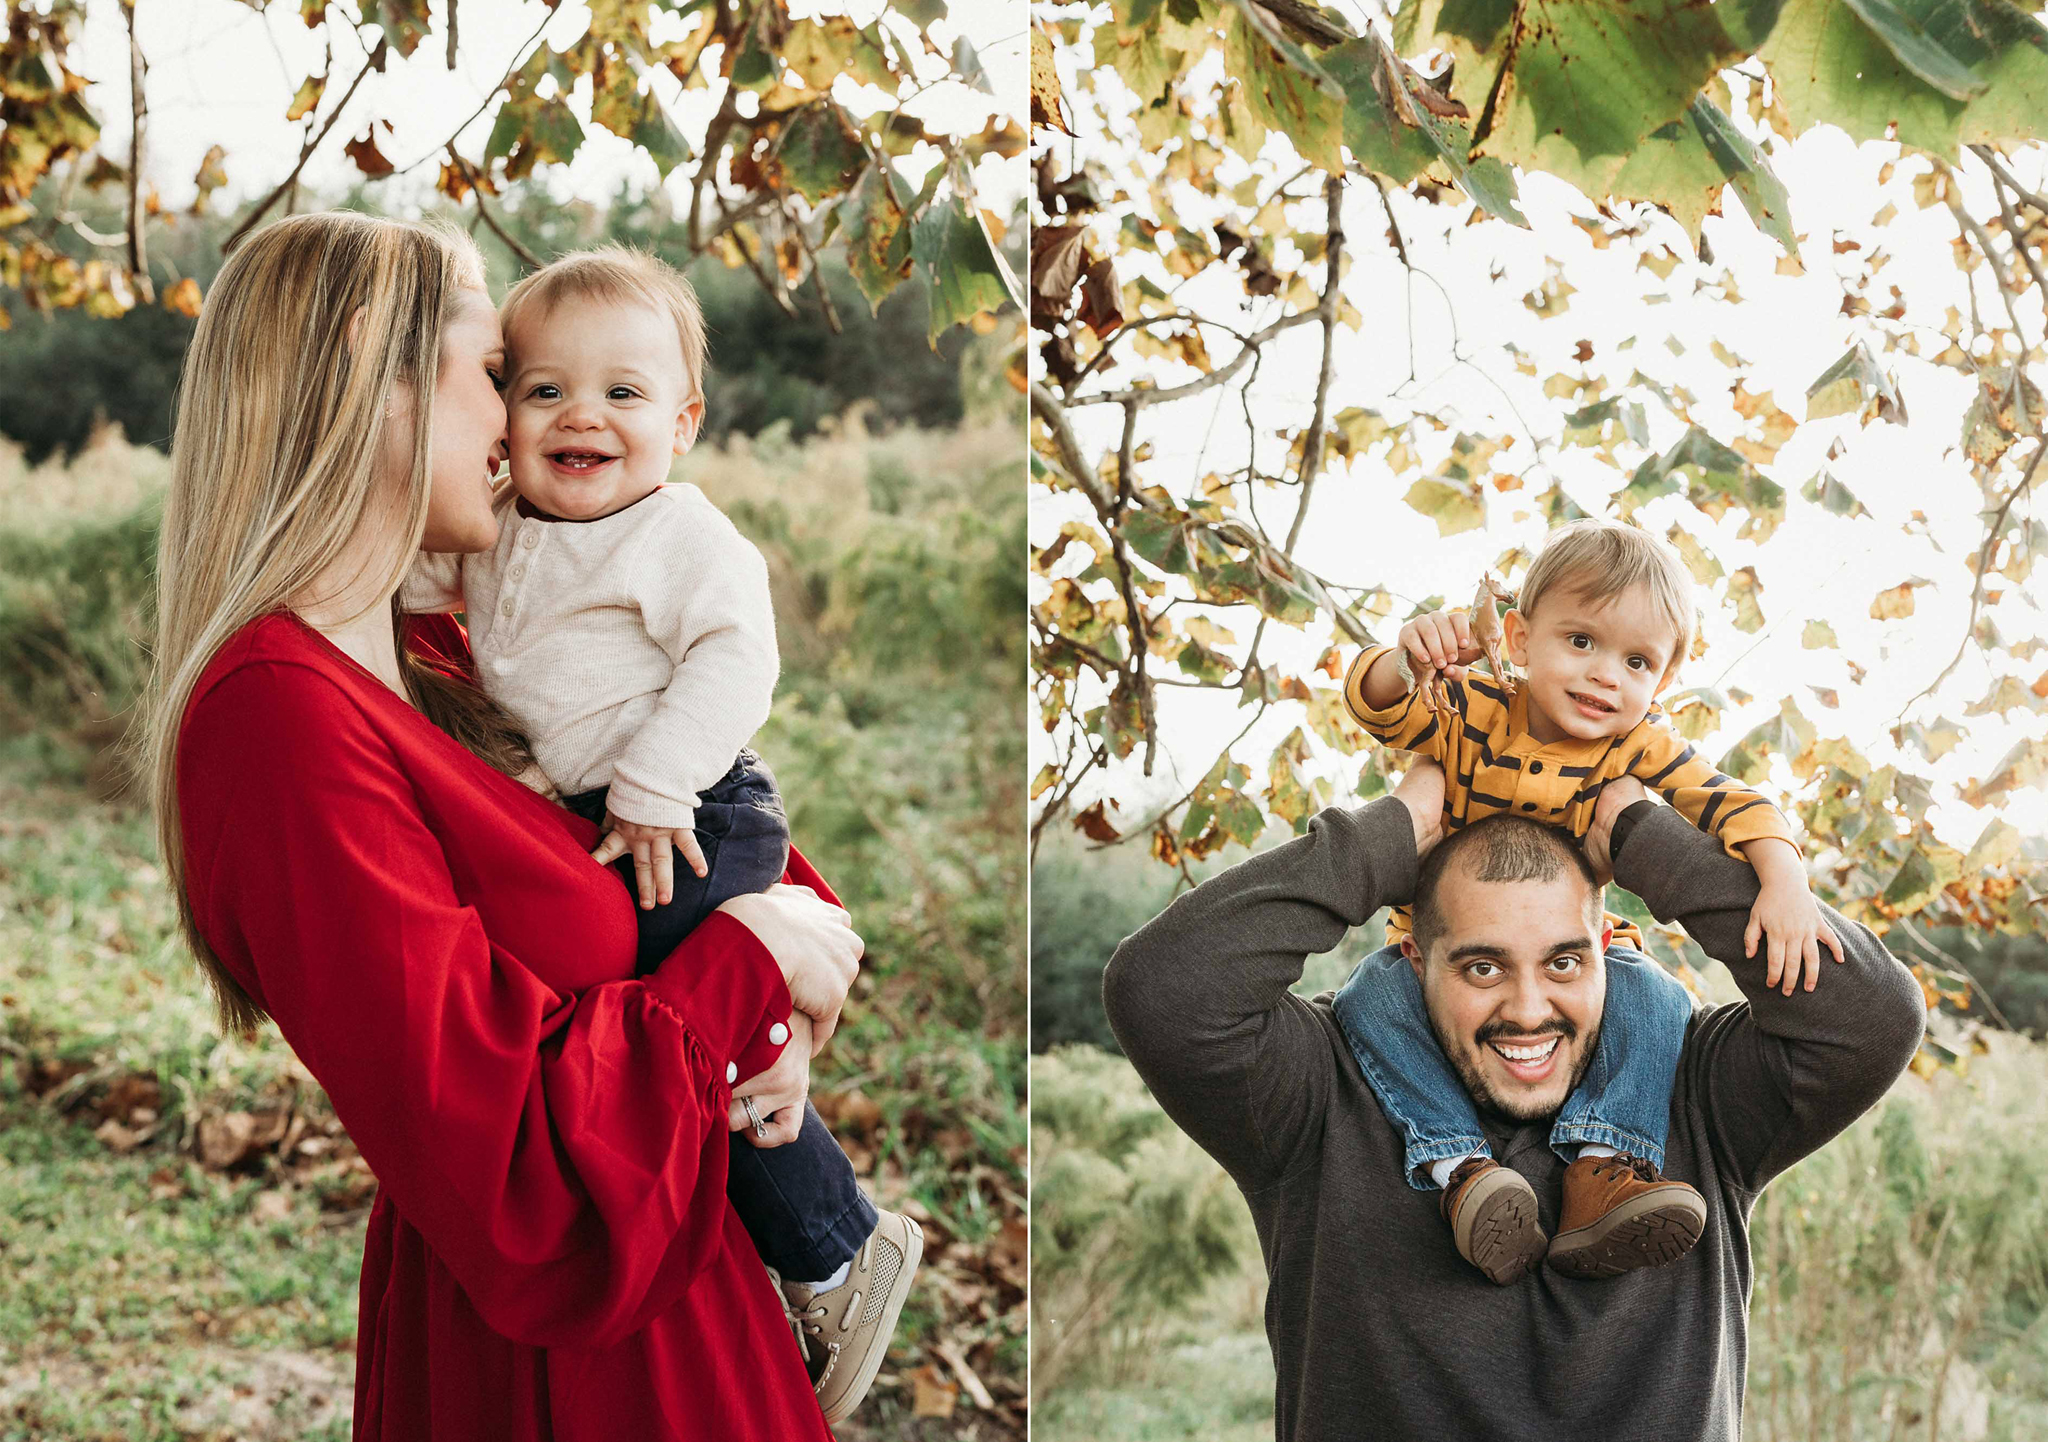 Tampa Family Photographer_Kayli diptych for blog 2.jpg